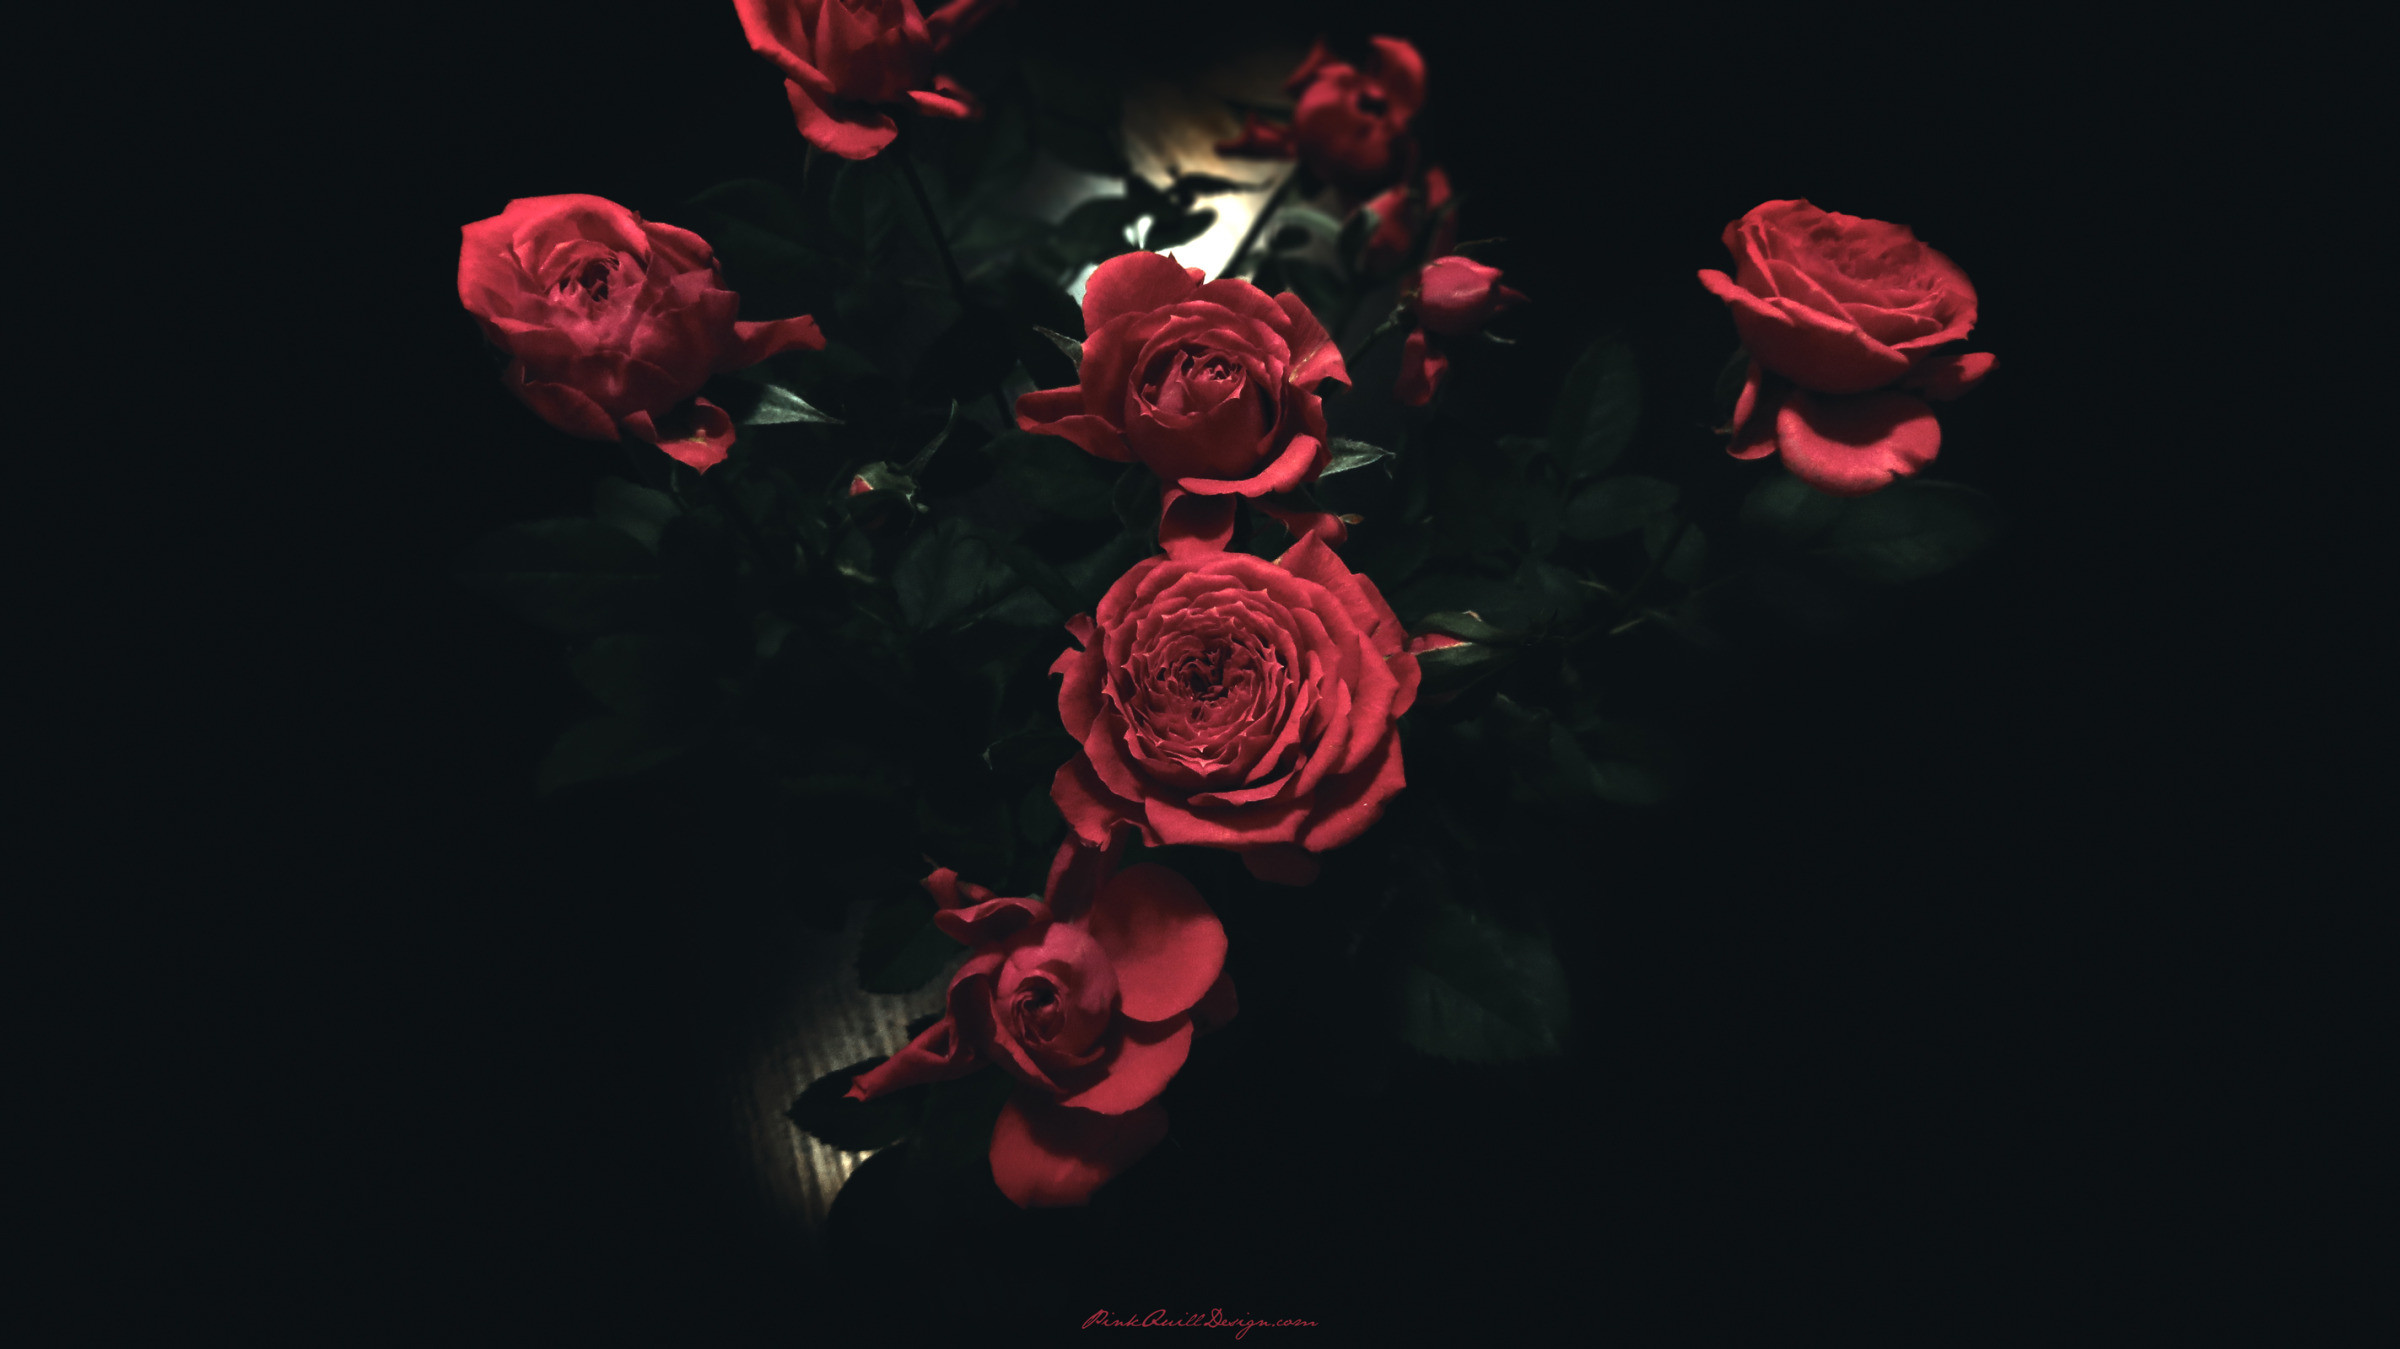 Gothic Roses Wallpaper (63+ images)